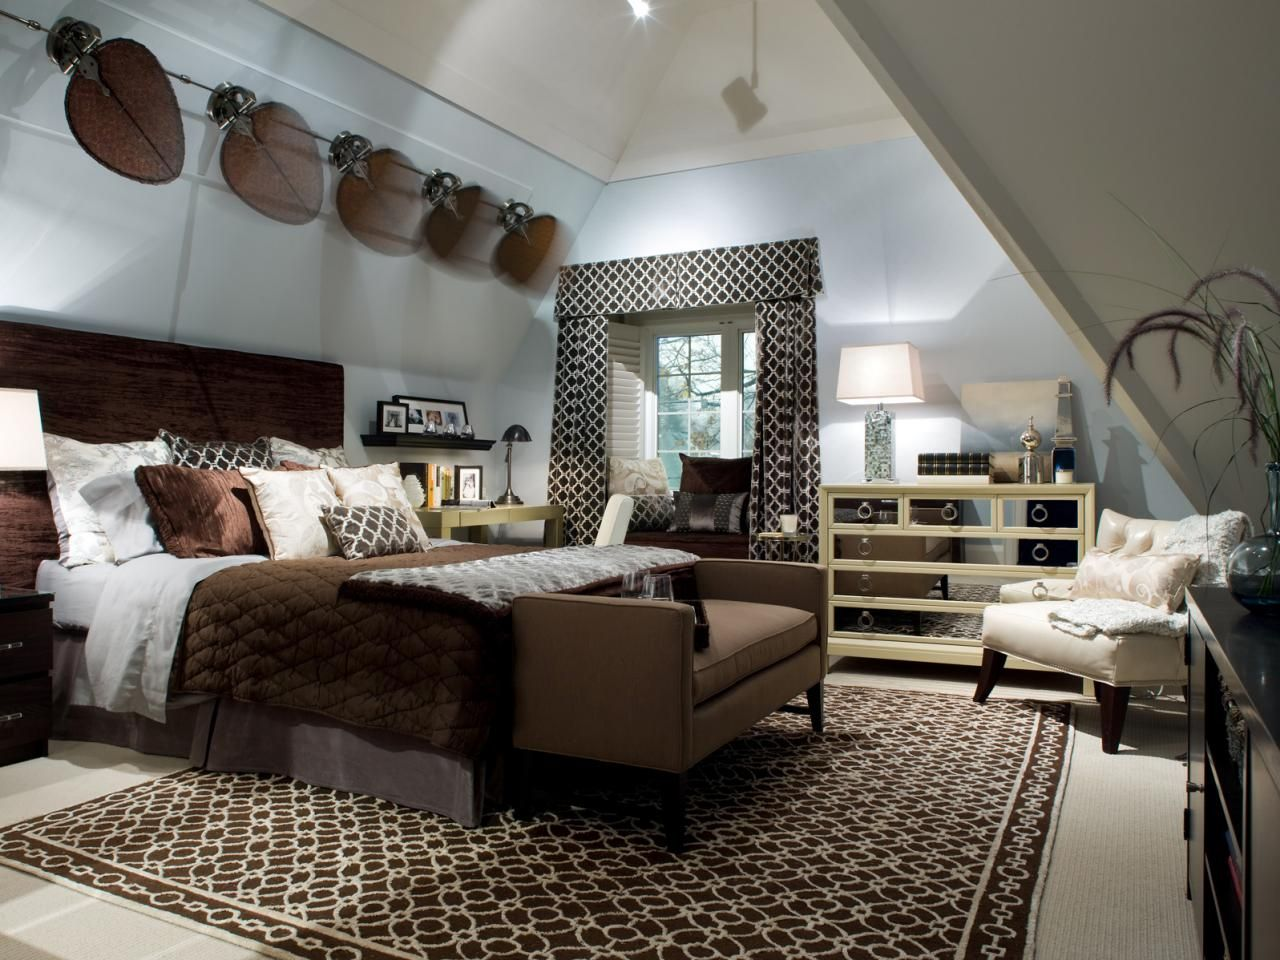 Candice Olson Bedroom Designs Amusing 10 Bedroom Retreats From Candice Olson  Candice Olson Bedroom Inspiration Design